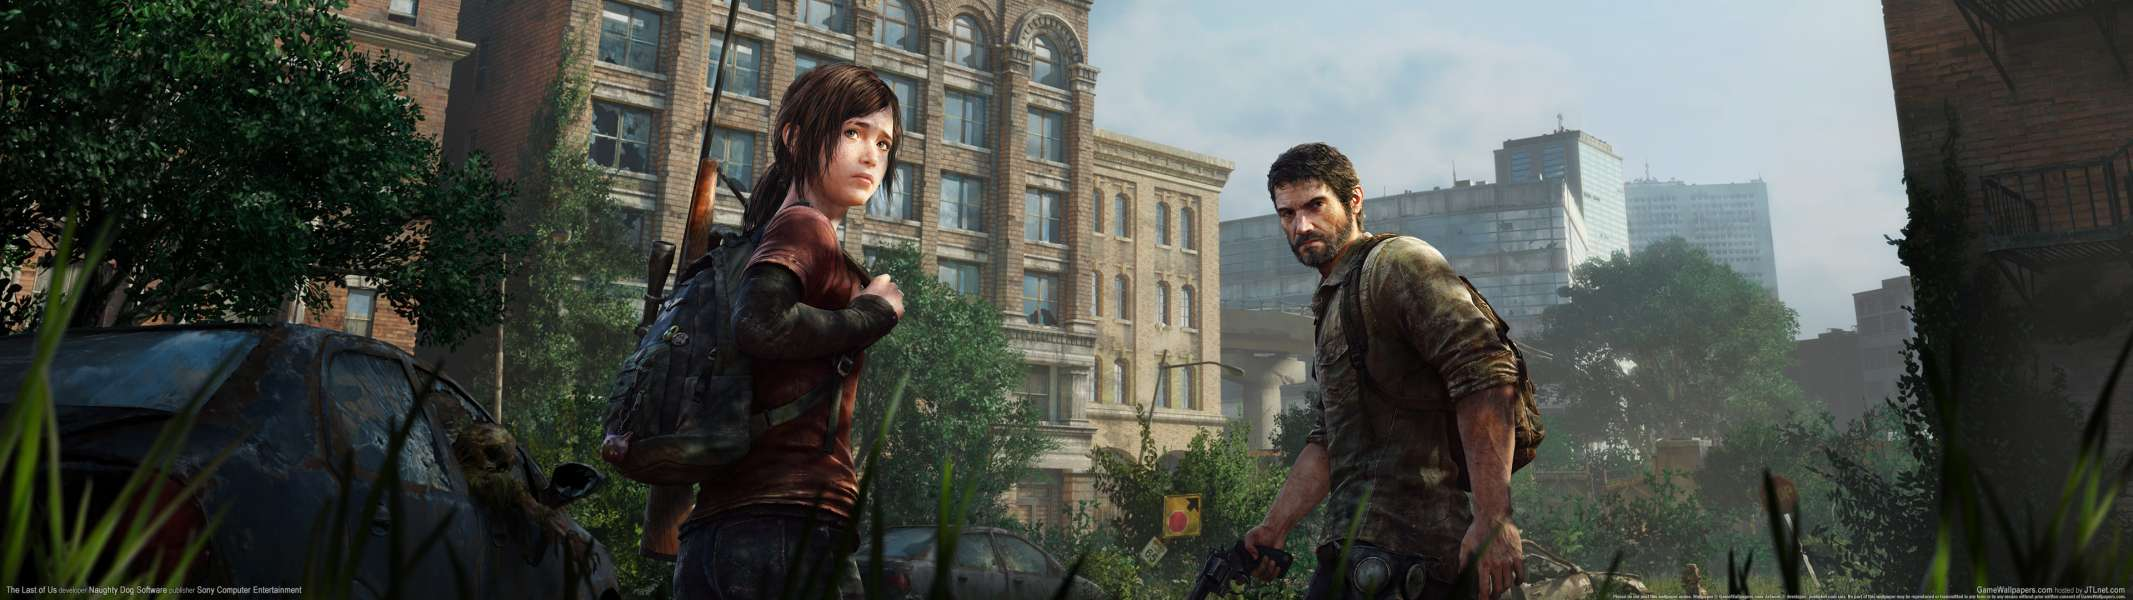 The Last of Us dual screen achtergrond